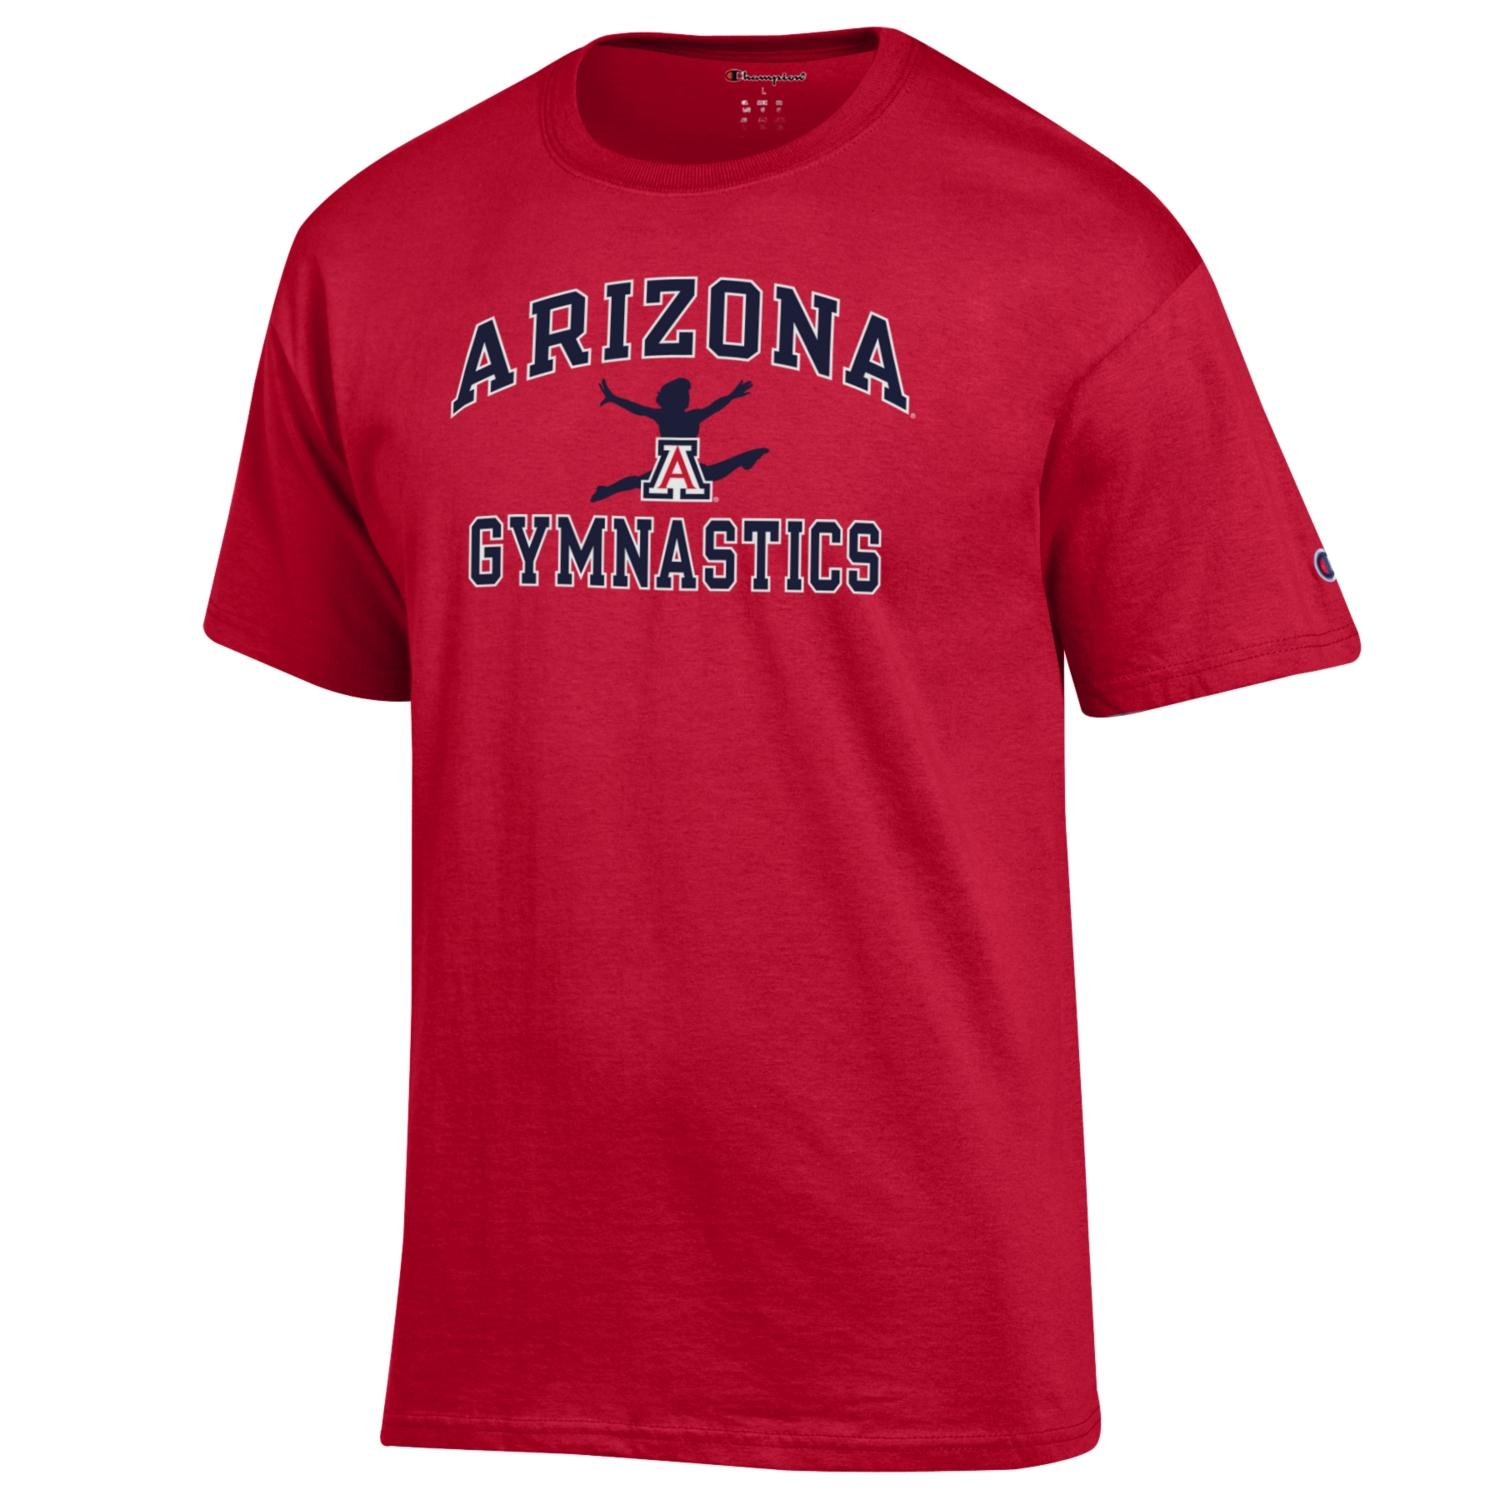 Image For Champion: Arizona Sport Gymnastics Tee - Red